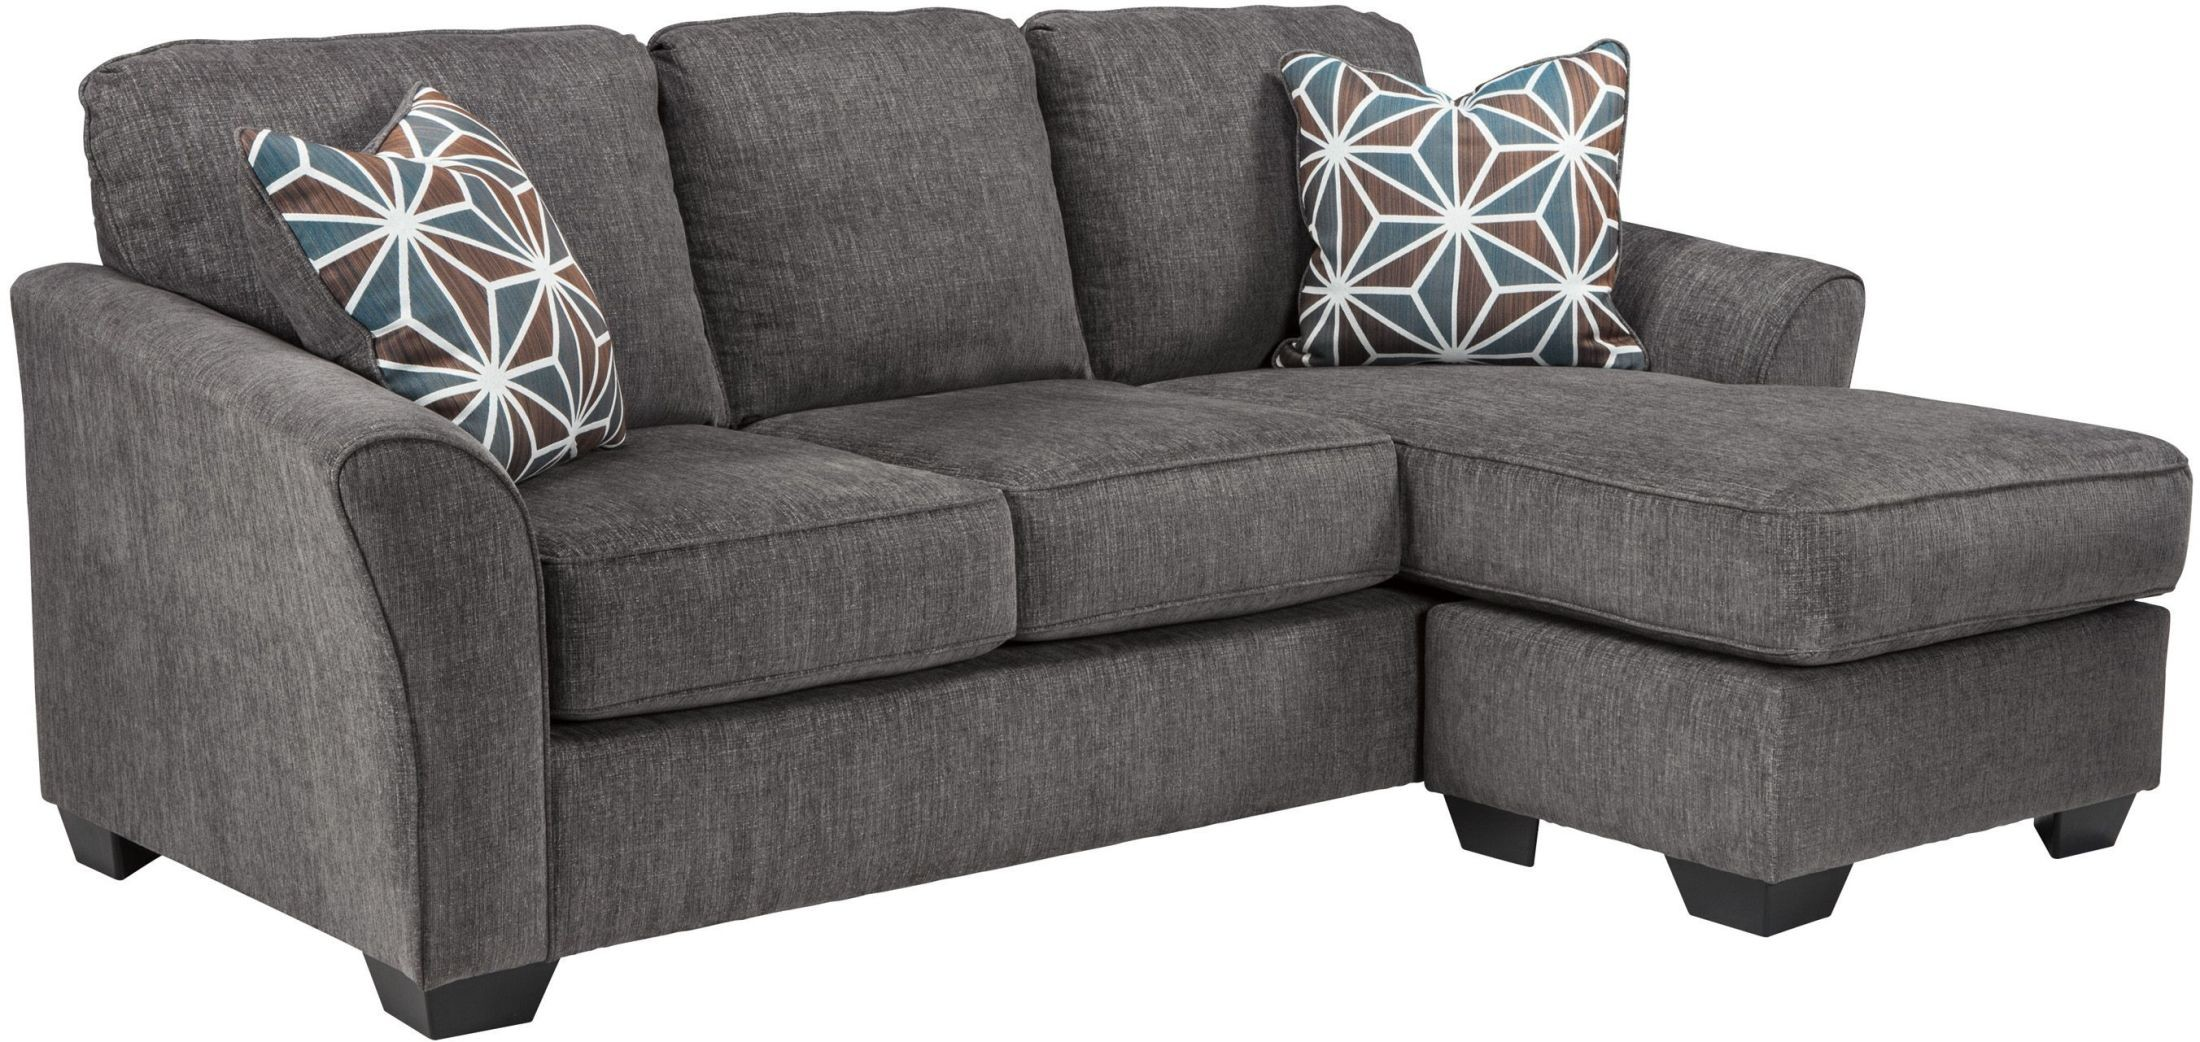 Ashley brise slate sofa chaise dallas tx living room for Ashley furniture chaise lounge couch